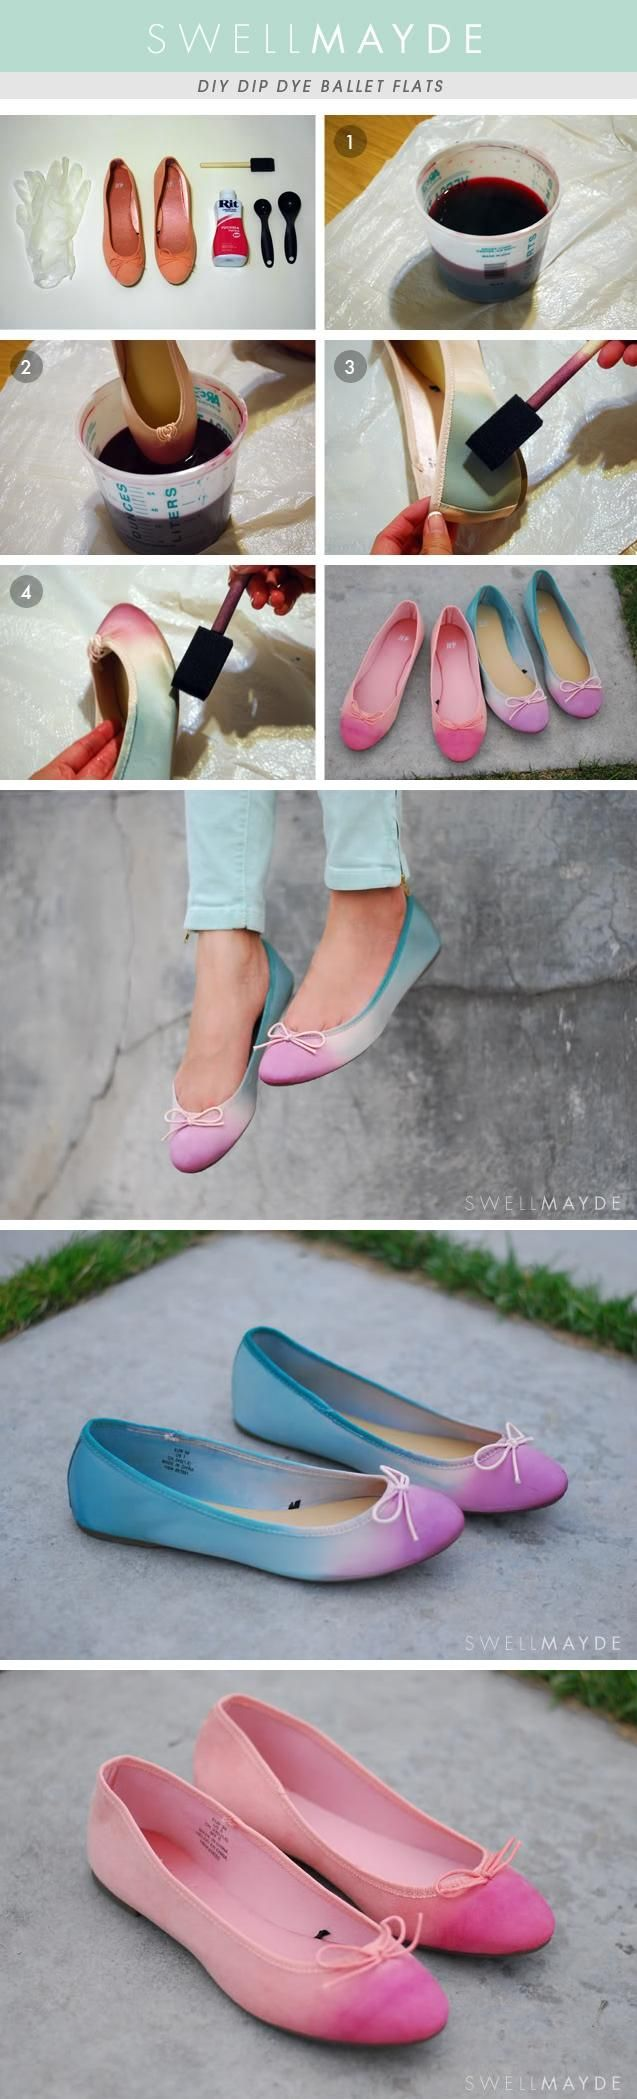 DIY Dip Dye Ombre Ballet Flats... maybe do some old ballet flats in a galaxy print